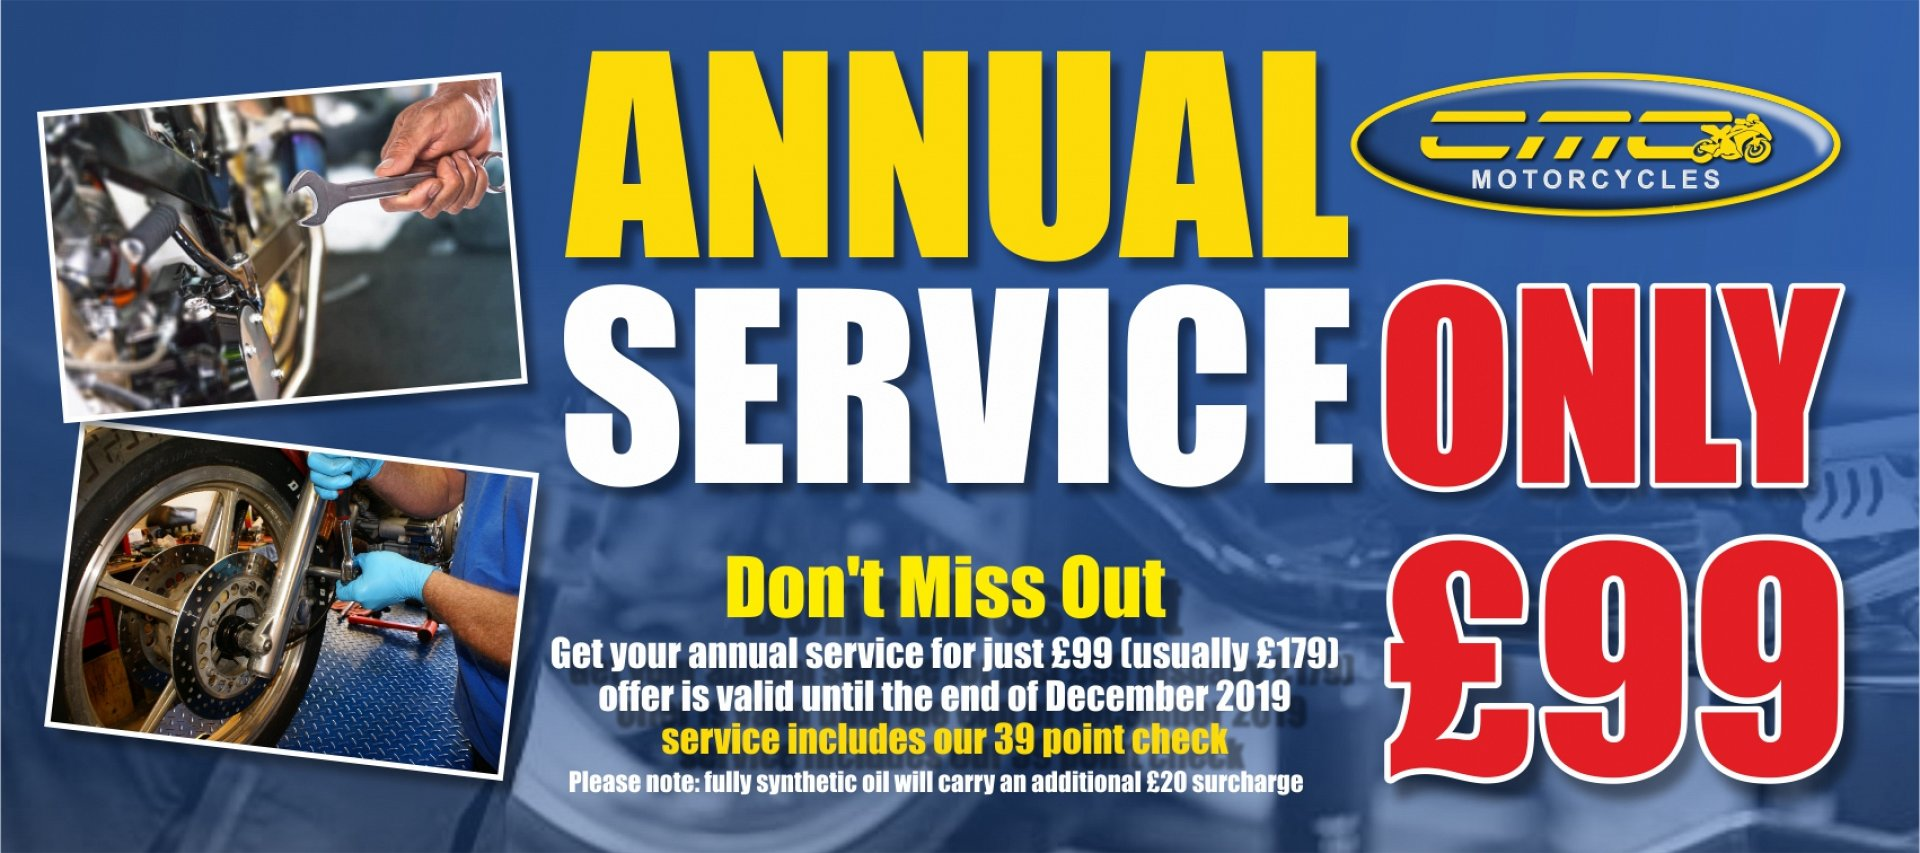 Get your annual motorcycle service for just £99. Usually £179